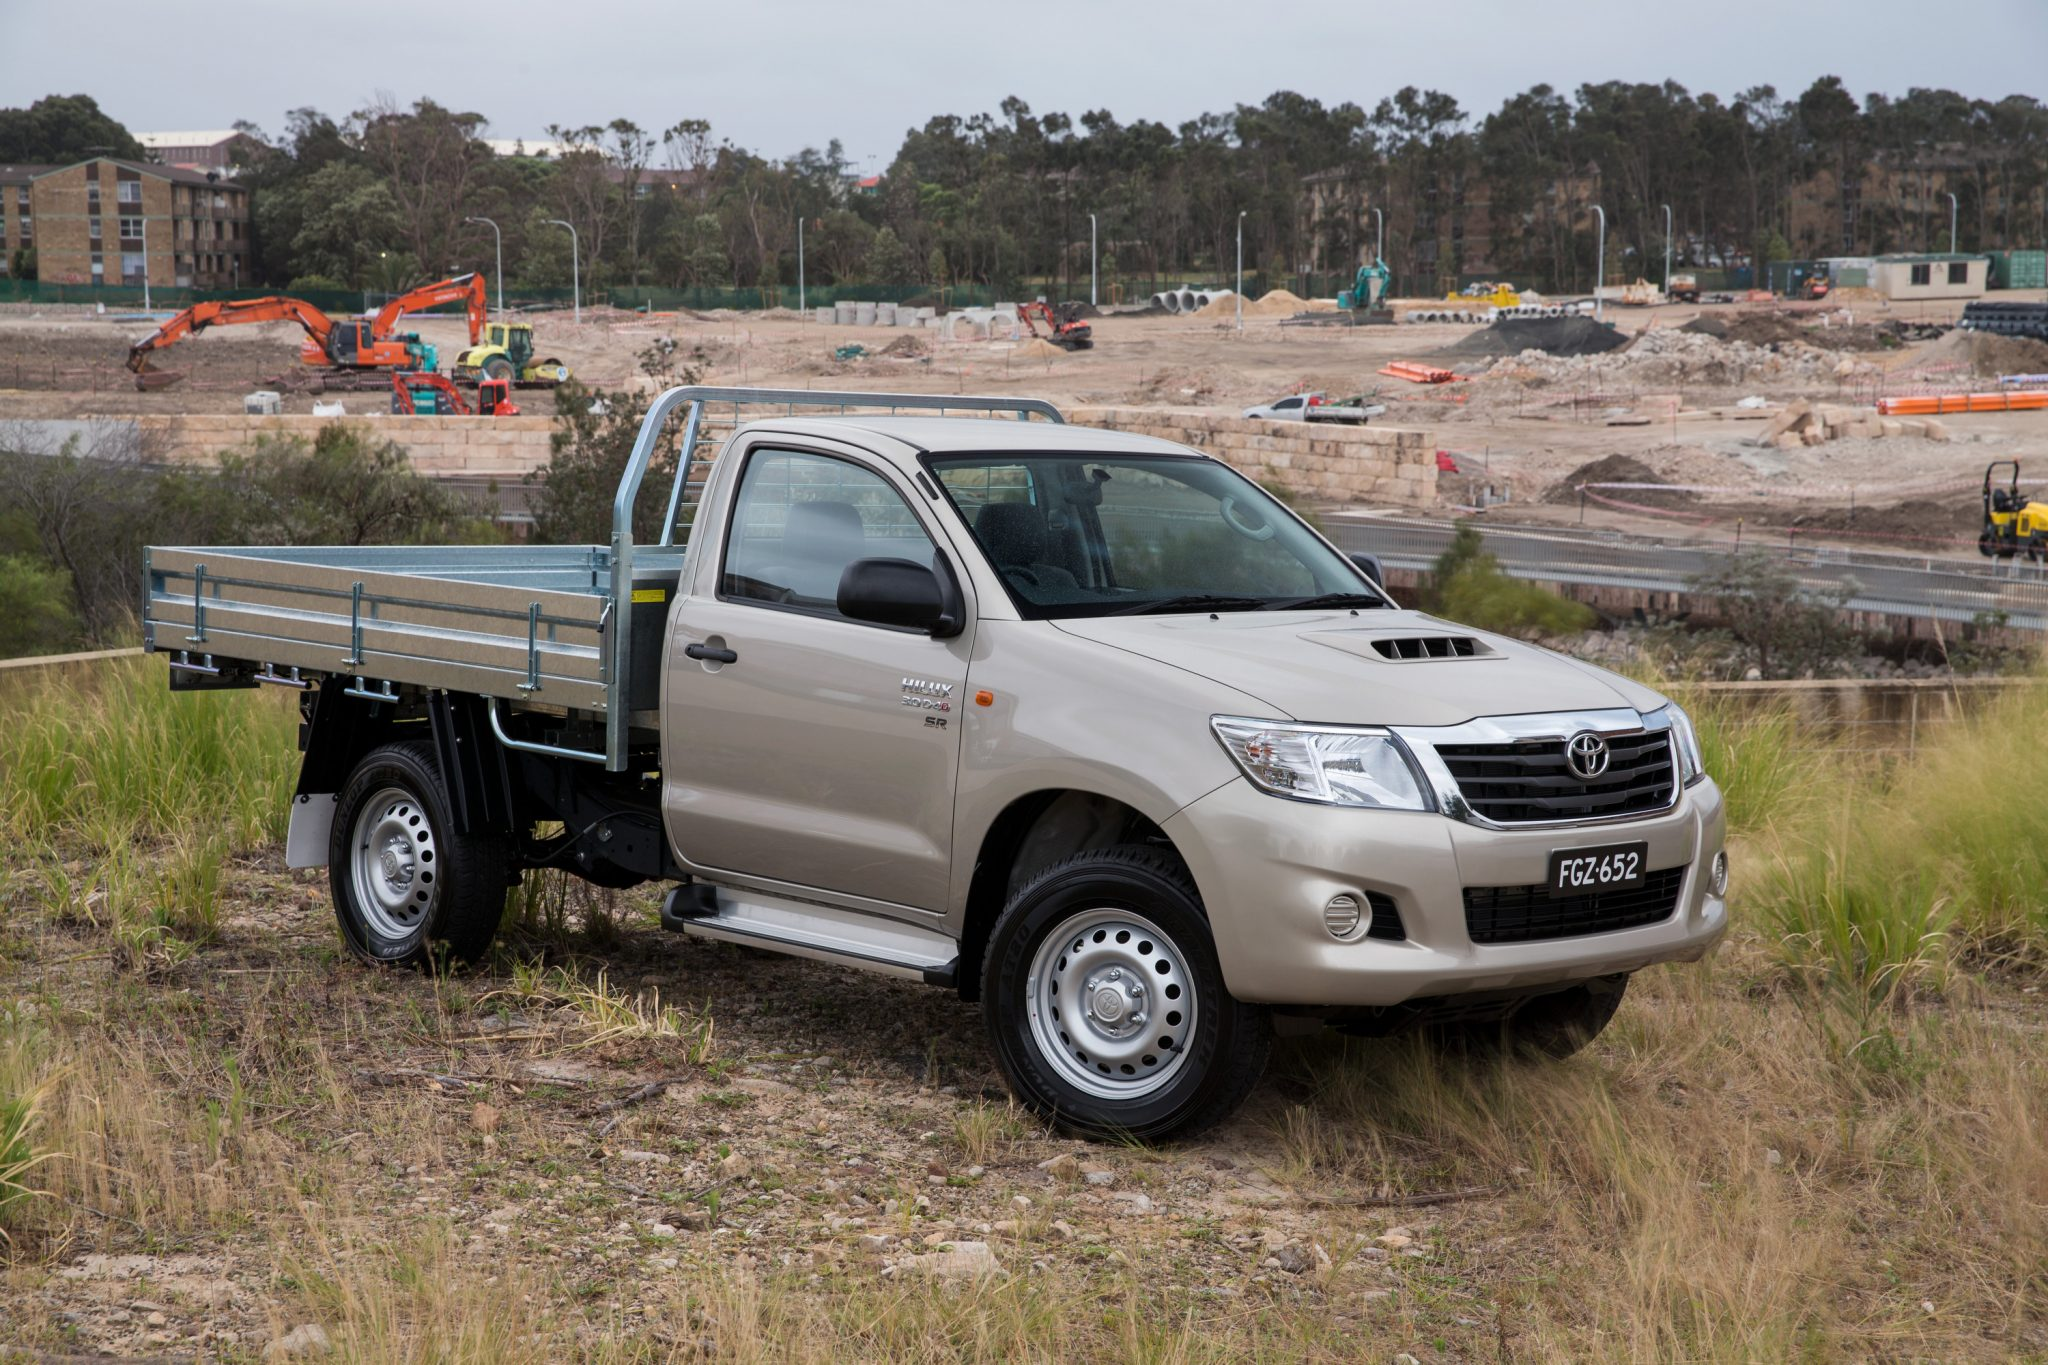 2014 toyota sr5 hilux specs autos weblog. Black Bedroom Furniture Sets. Home Design Ideas